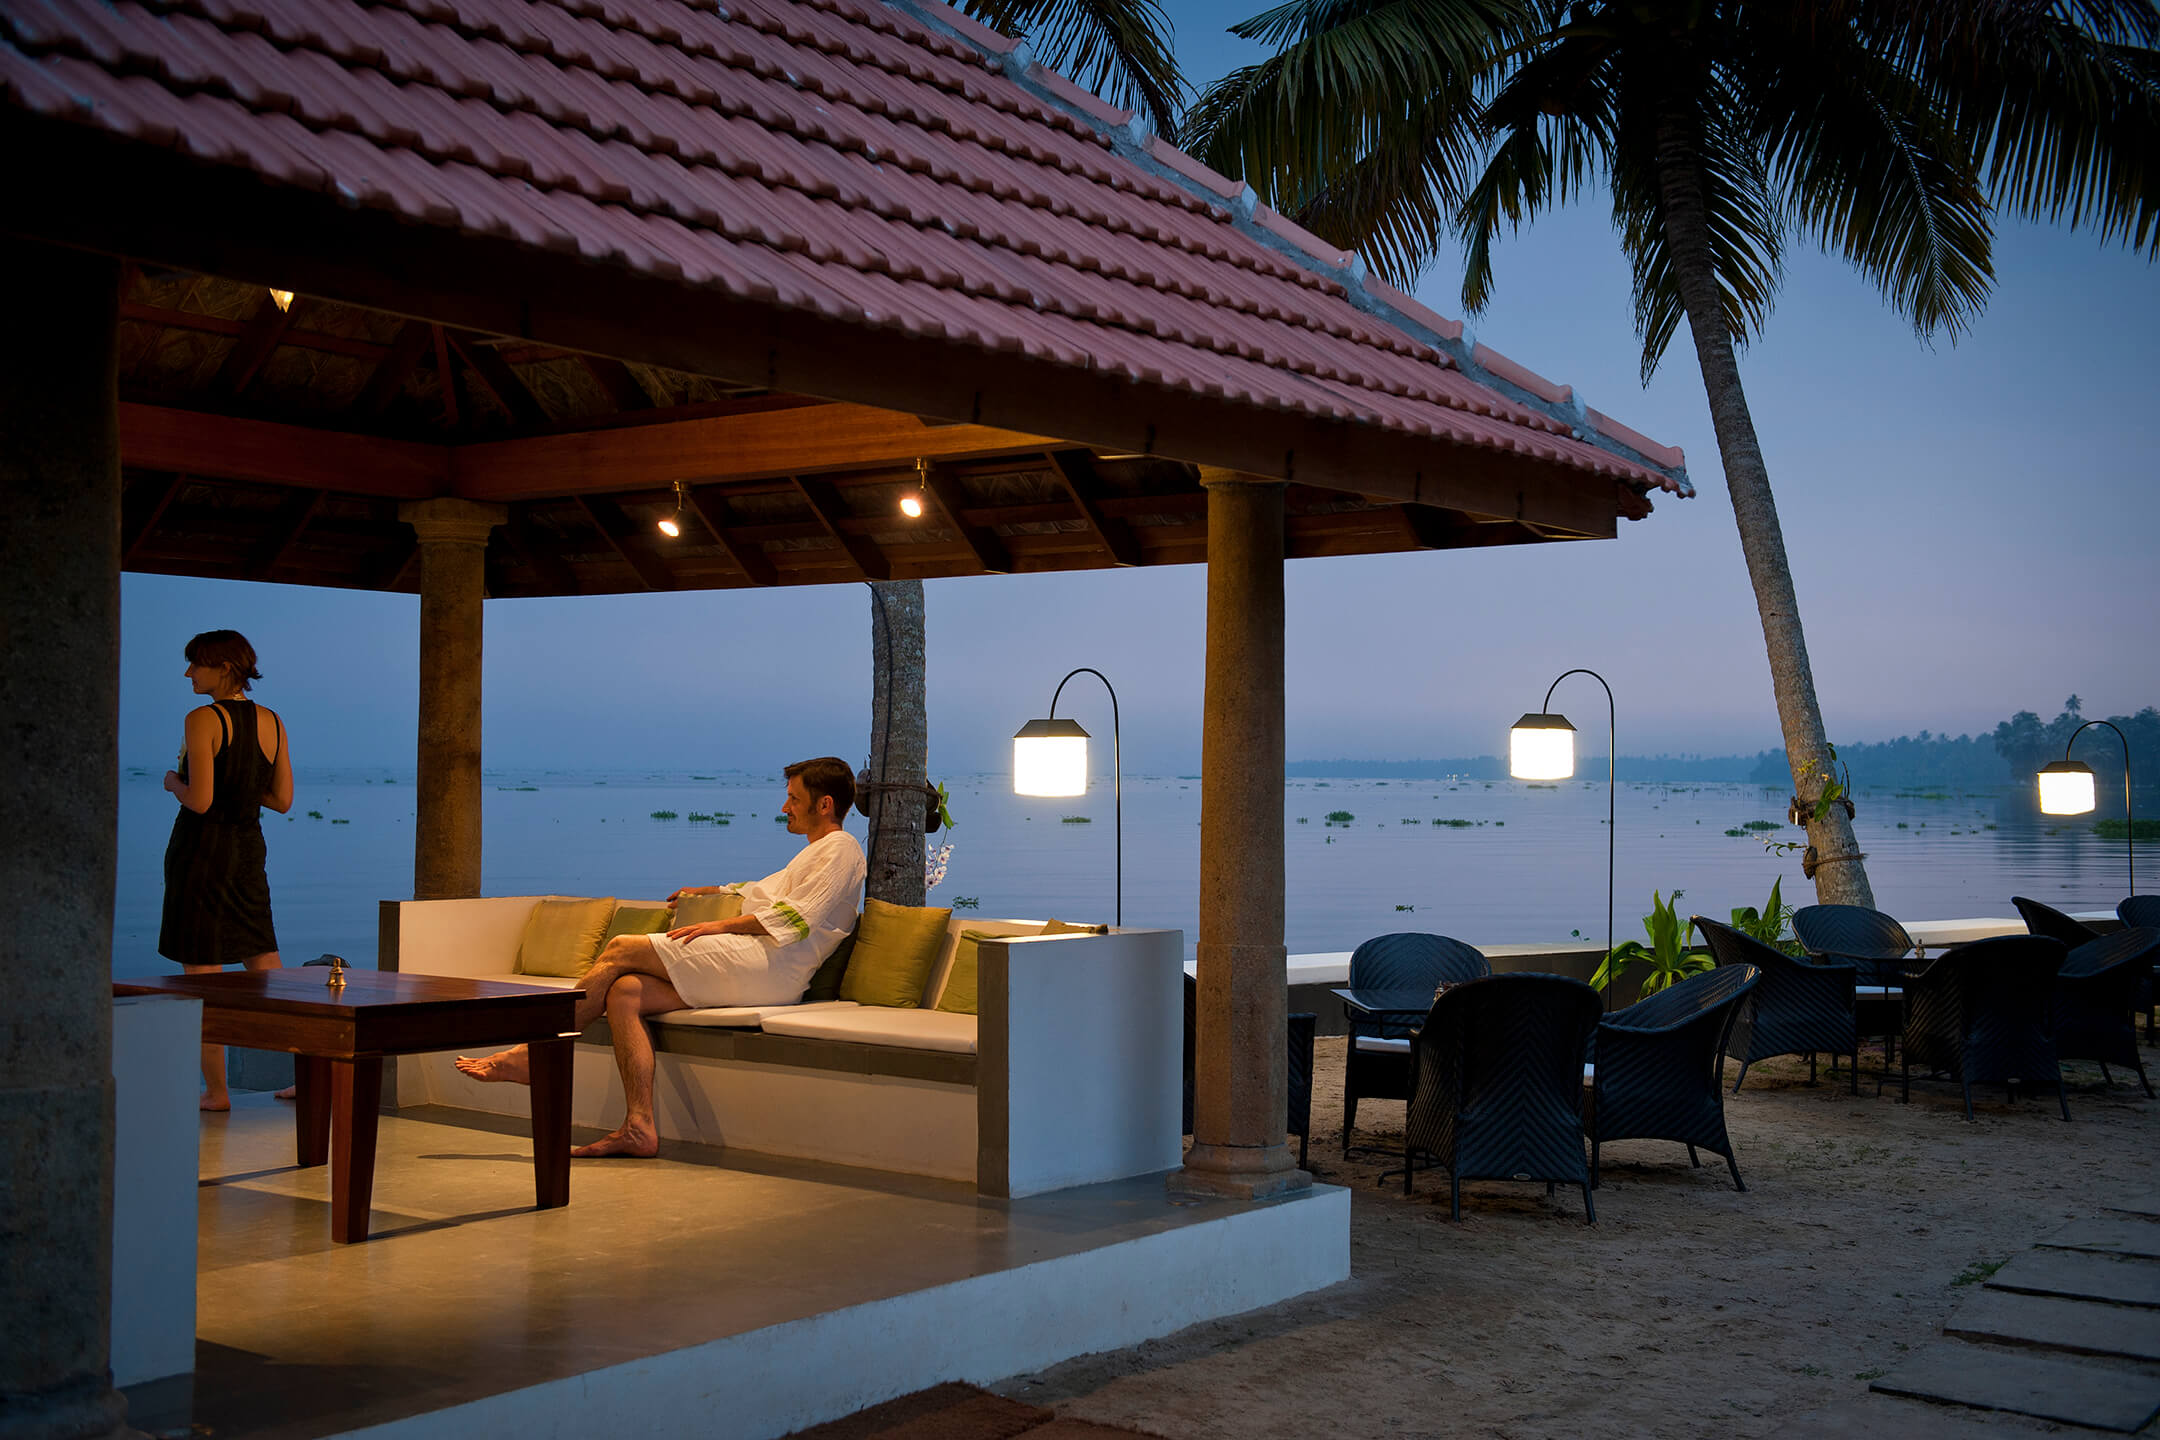 Best Boutique Hotels in India, The 4 Best Boutique Hotels in India